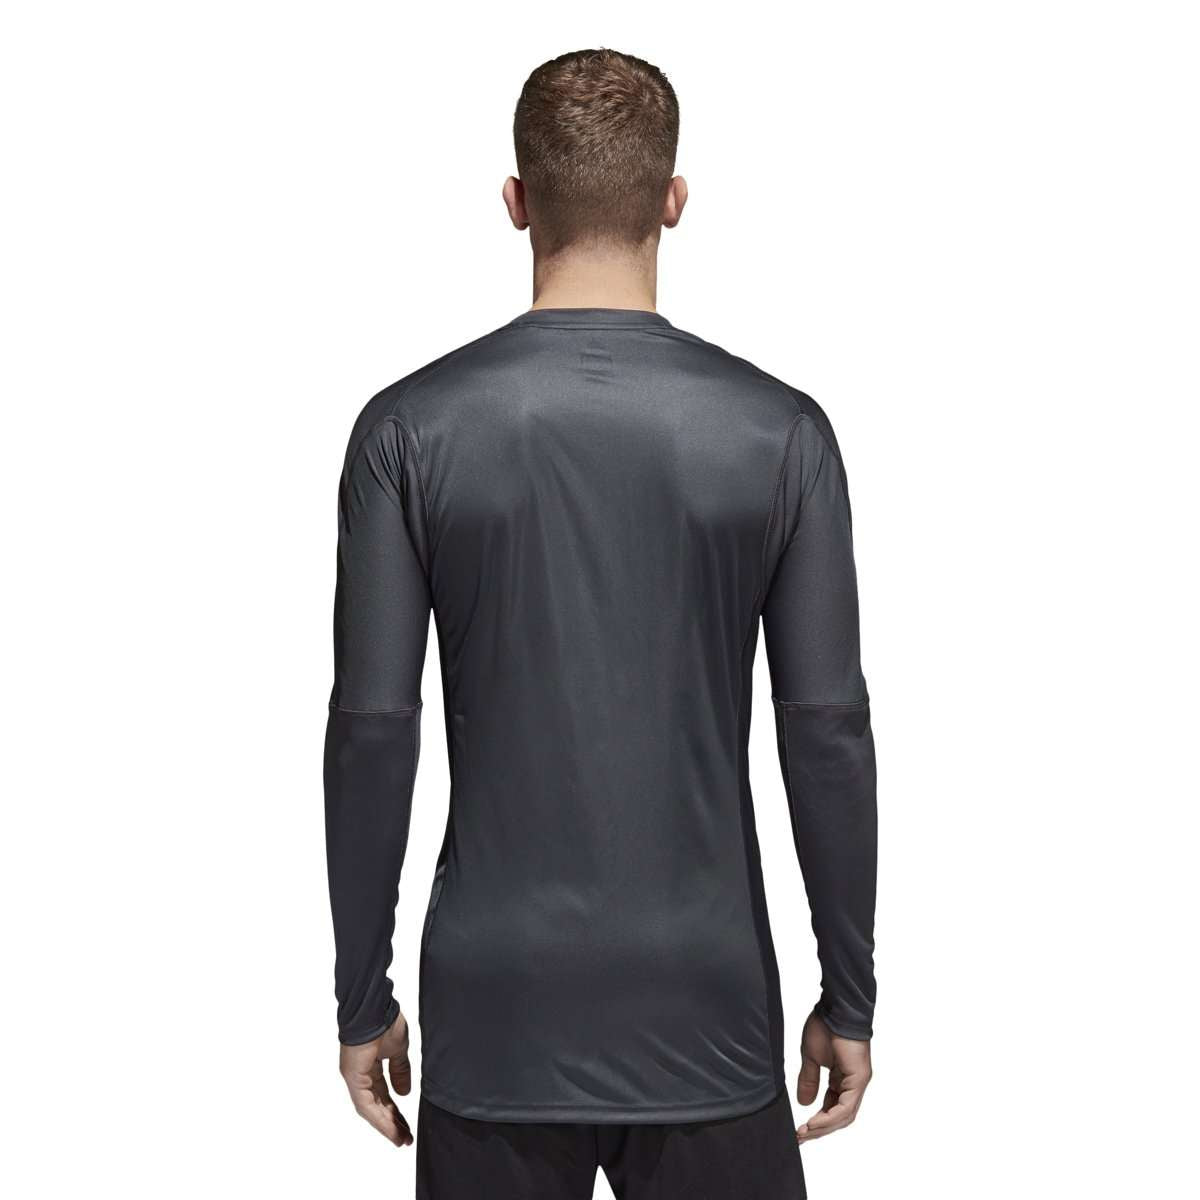 ... adidas AdiPro 18 Goalkeeper Jersey - League Outfitters 99acf1083